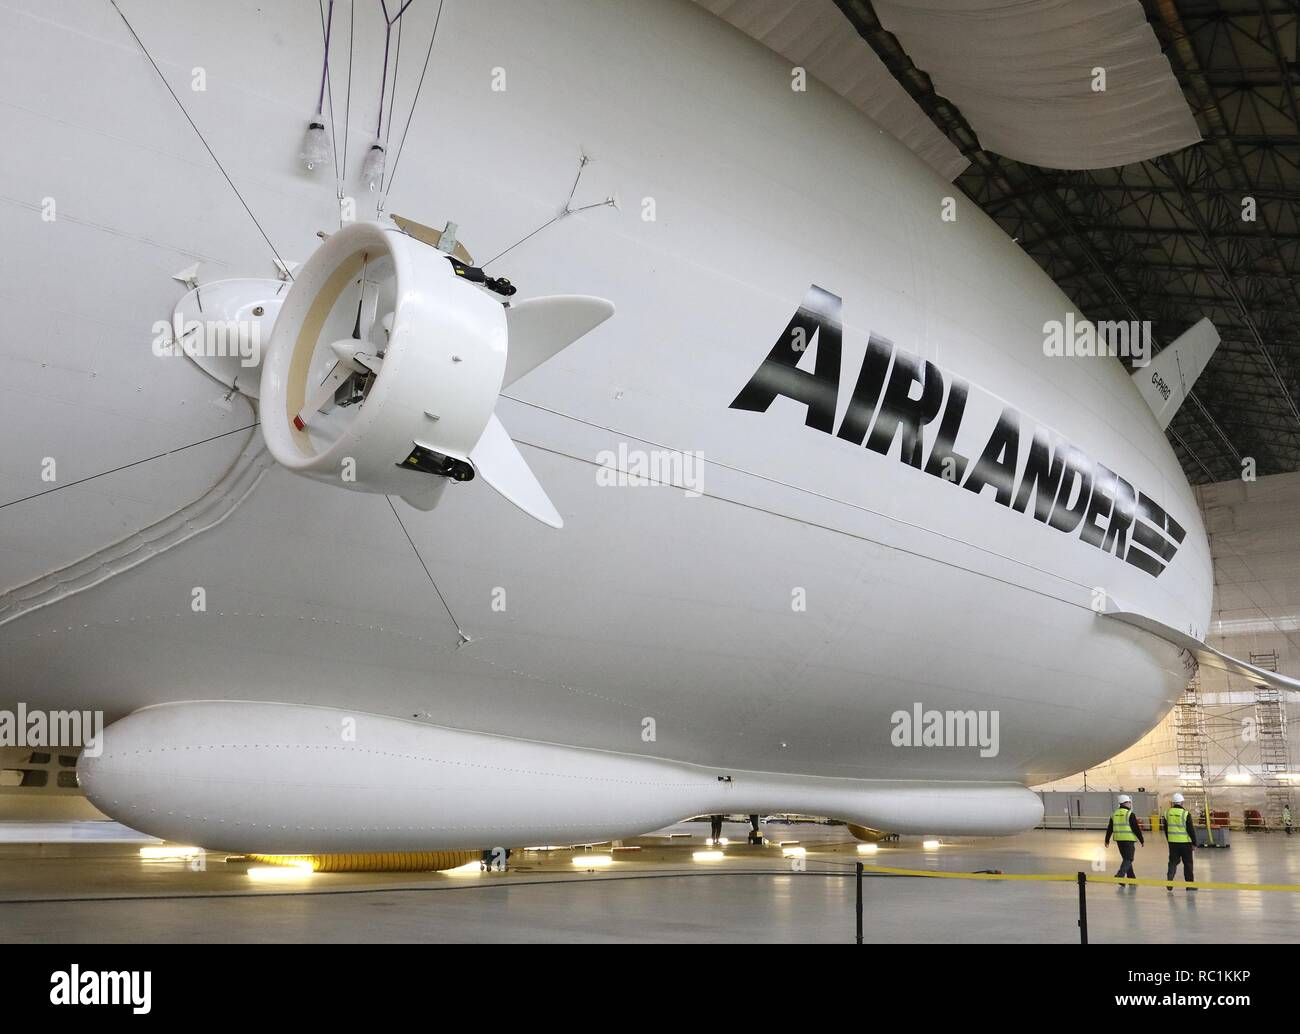 United Kingdom. 12th Apr, 2016. View of the Airlander, the longest aircraft in the world.The £32m aircraft - nicknamed ''The Flying Bum'' was originally unveiled to the public at a naming ceremony by HRH The Duke of Kent in April 2016, but a few weeks later it crashed at the end of a test flight. At 92-metre long, the Airlander 10 is the longest aircraft in the world. The world's longest aircraft has been retired from service as developers prepare to start work on a new model. Credit: SOPA Images/ZUMA Wire/Alamy Live News - Stock Image